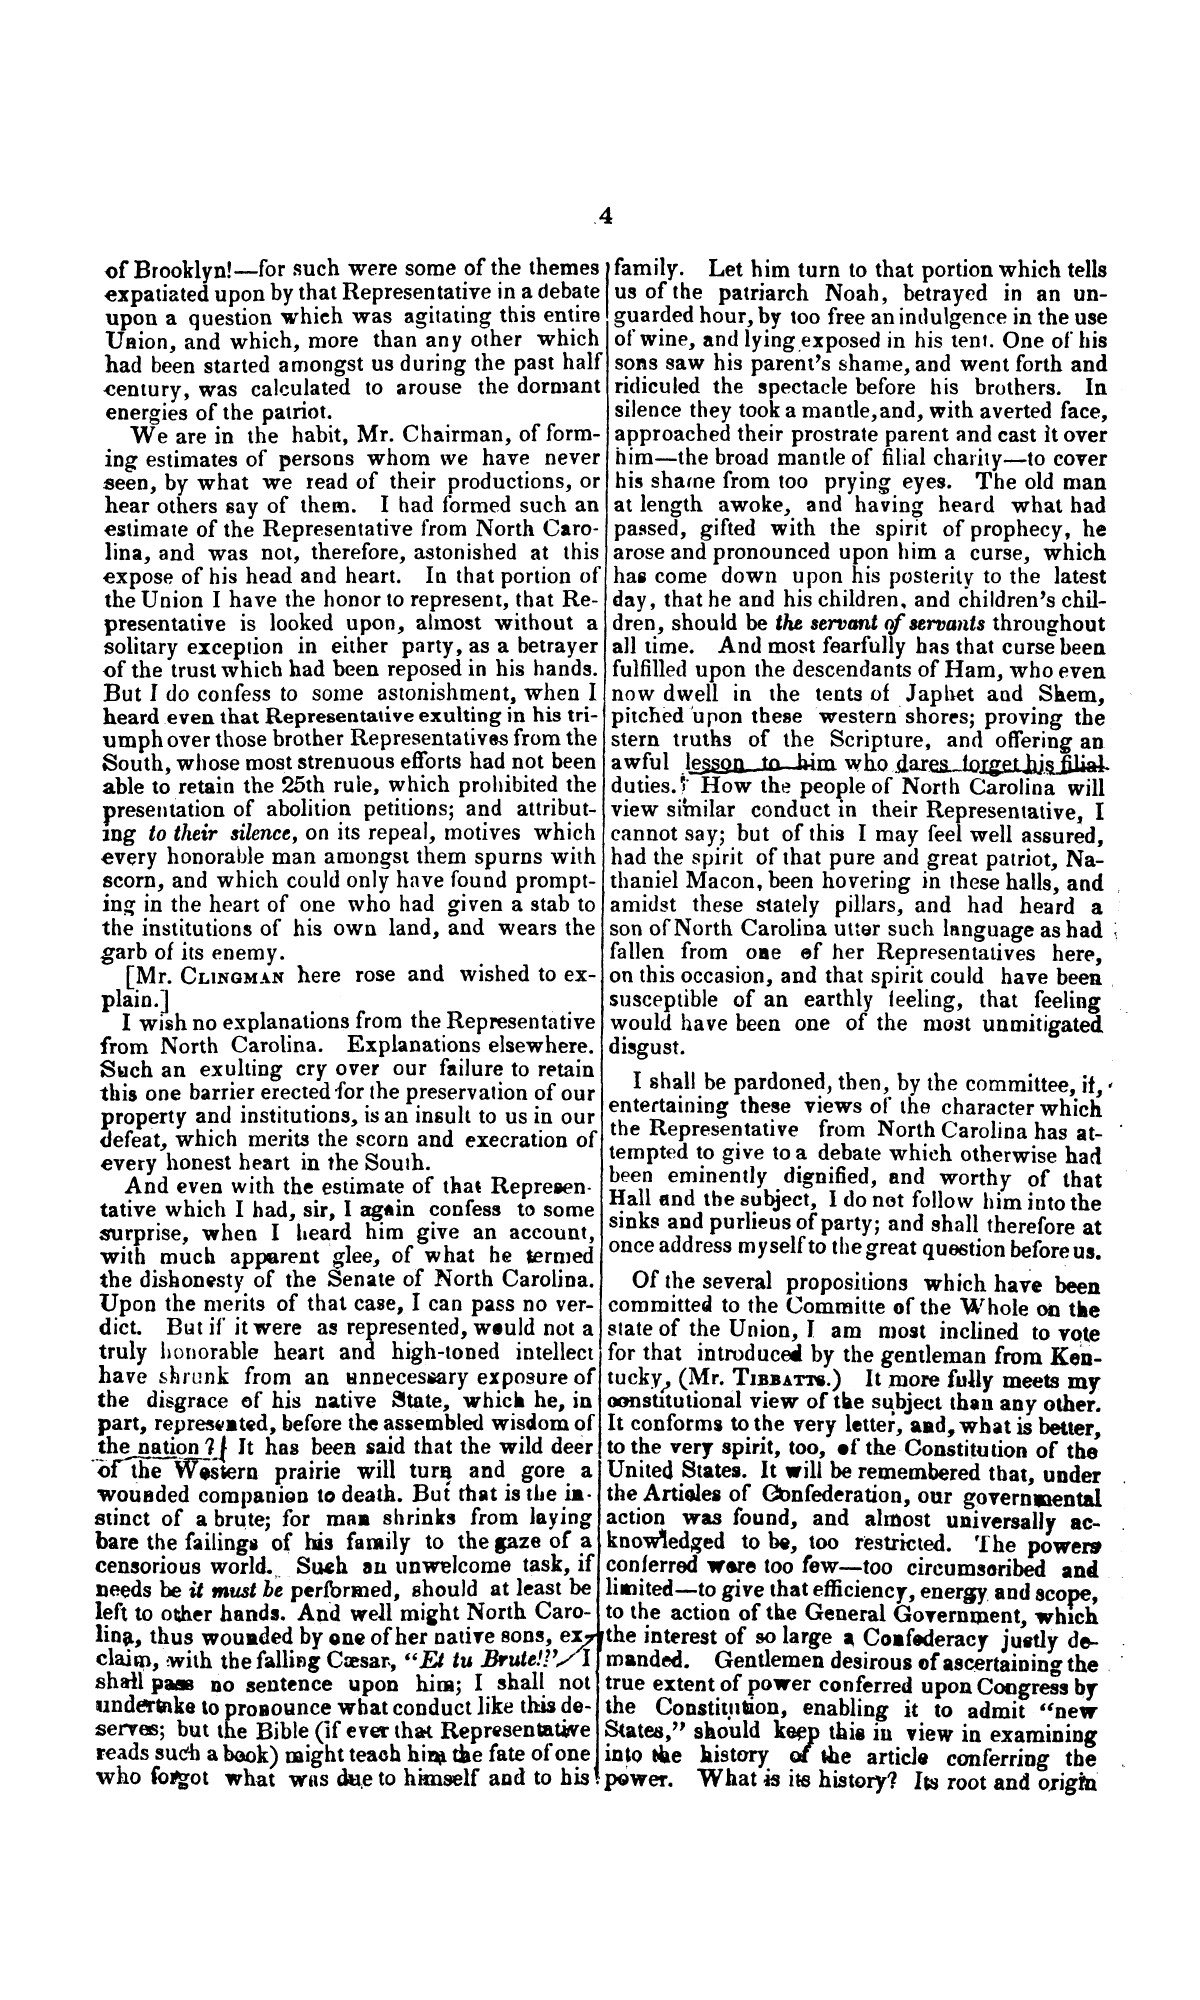 Speech of Hon. Wm. Lowndes Yancey, of Alabama, on the annexation of Texas to the United States, delivered in the House of Representatives, Jan. 7, 1845.                                                                                                      [Sequence #]: 4 of 14